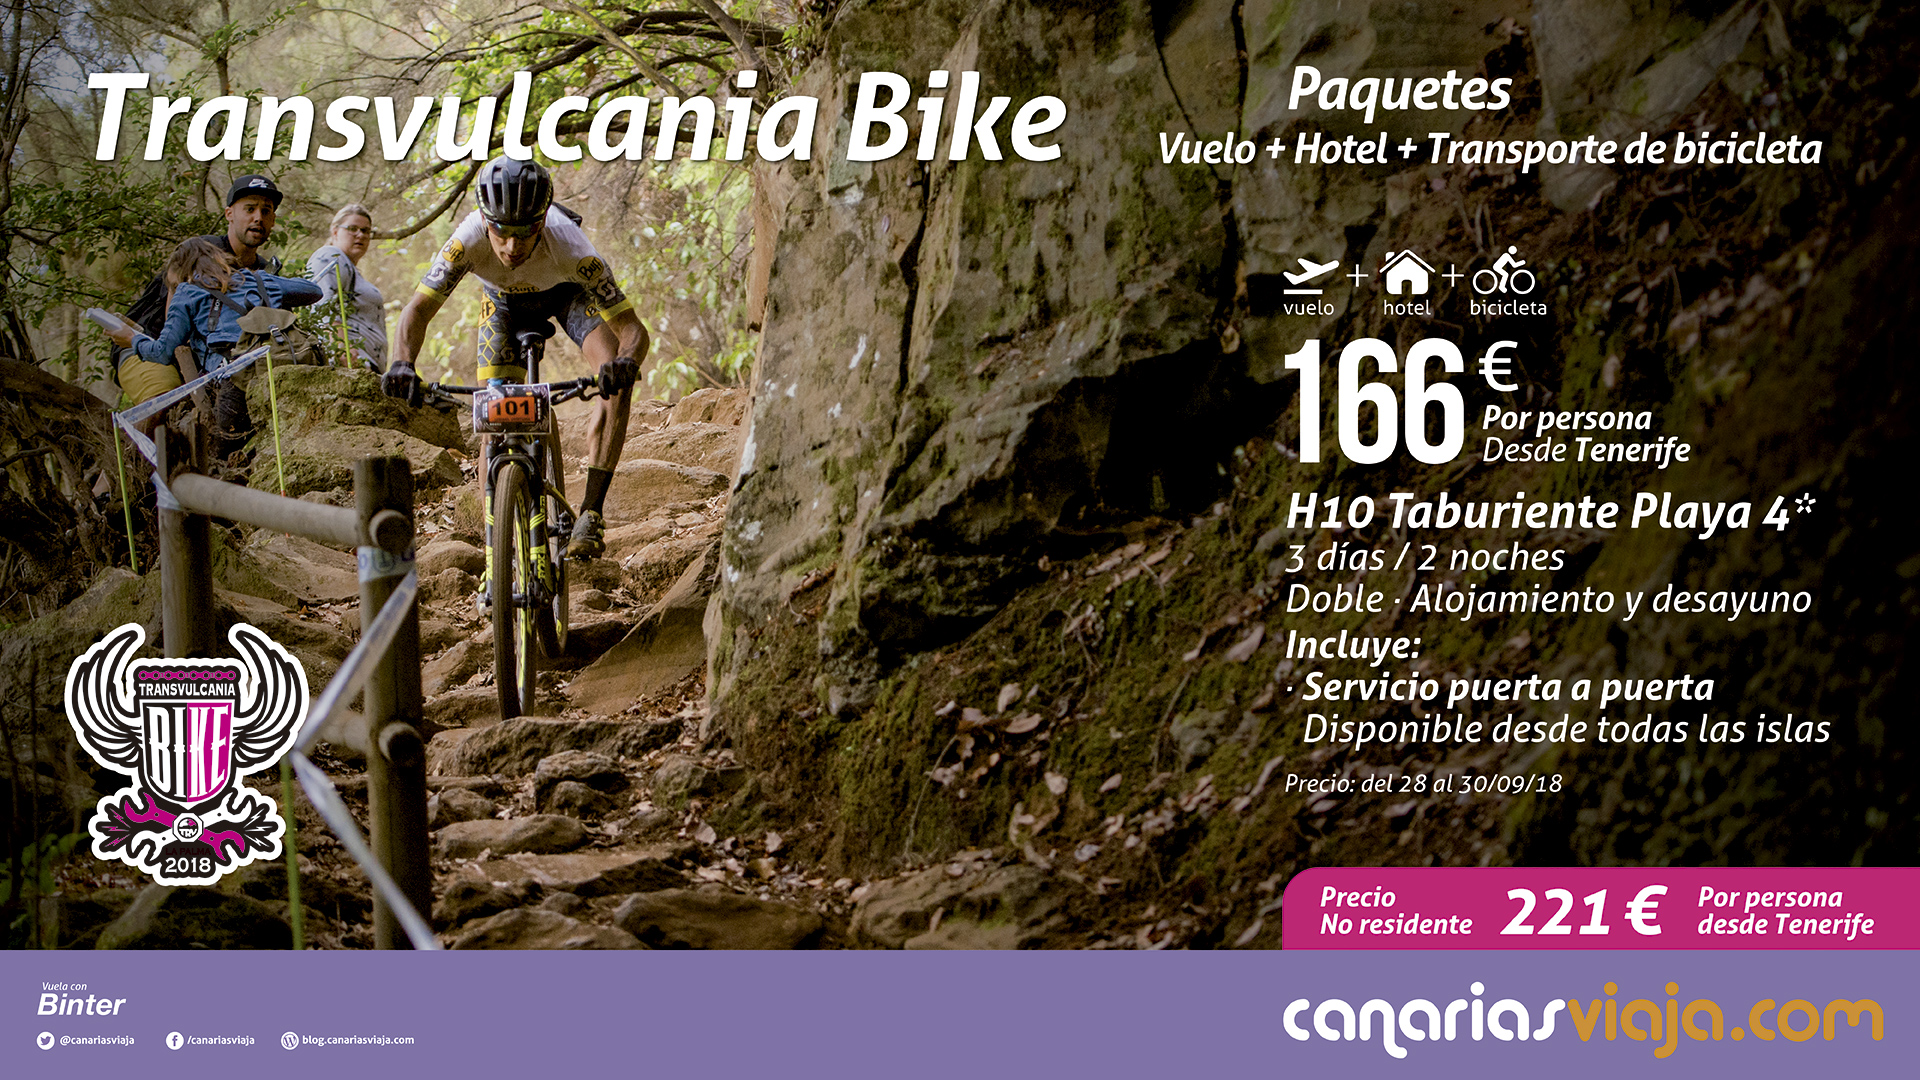 Paquetes TRV BIKE Vuelo + Hotel + Bici